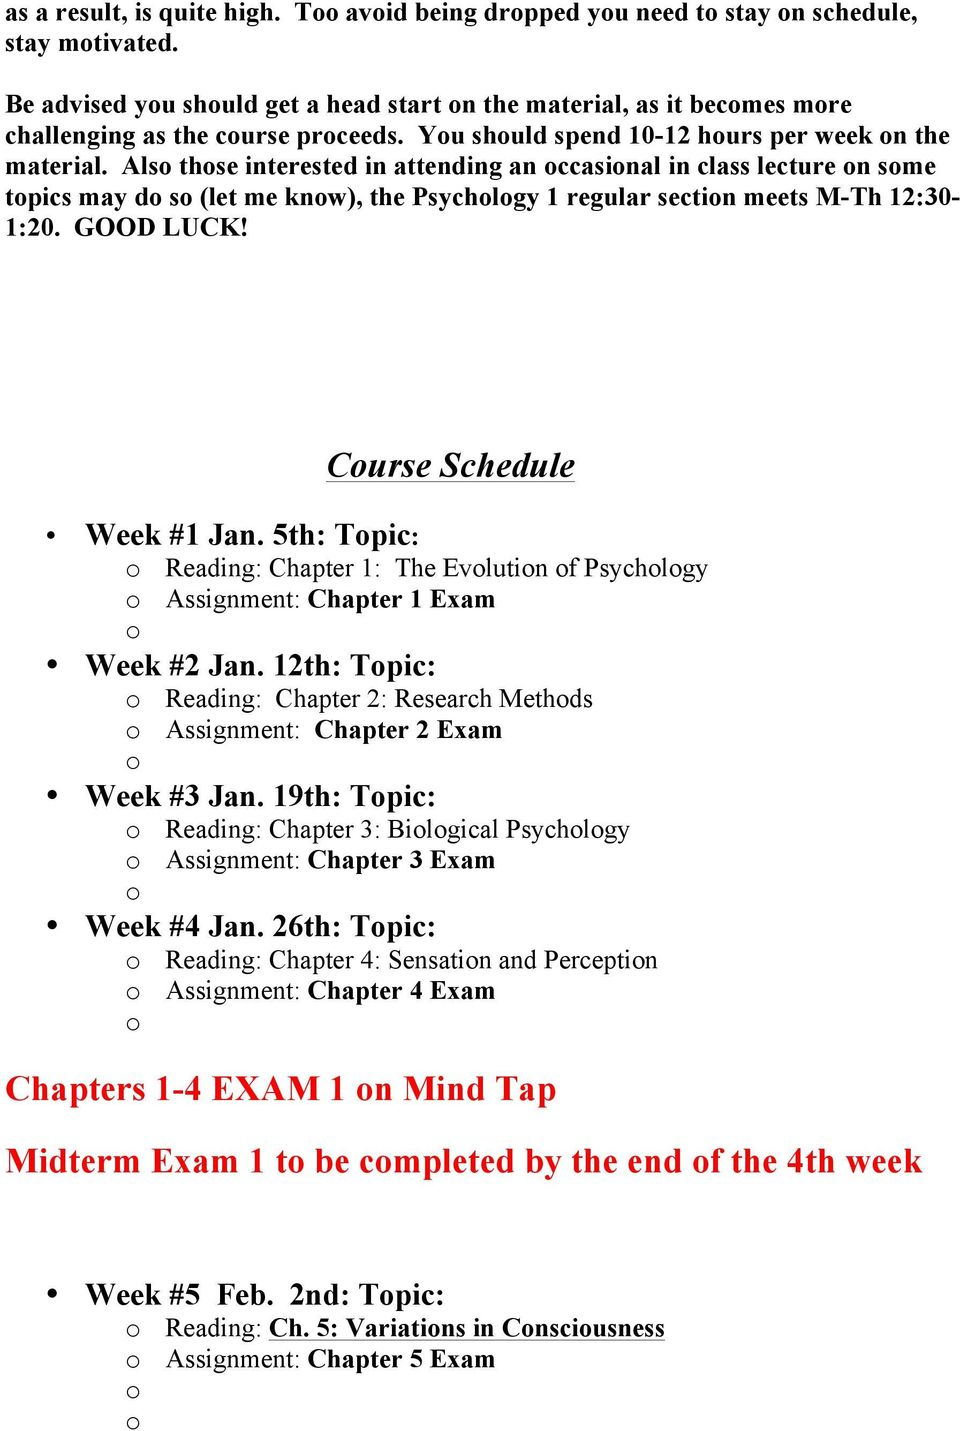 GOOD LUCK! Curse Schedule Week #1 Jan. 5th: Tpic: Reading: Chapter 1: The Evlutin f Psychlgy Assignment: Chapter 1 Exam Week #2 Jan.